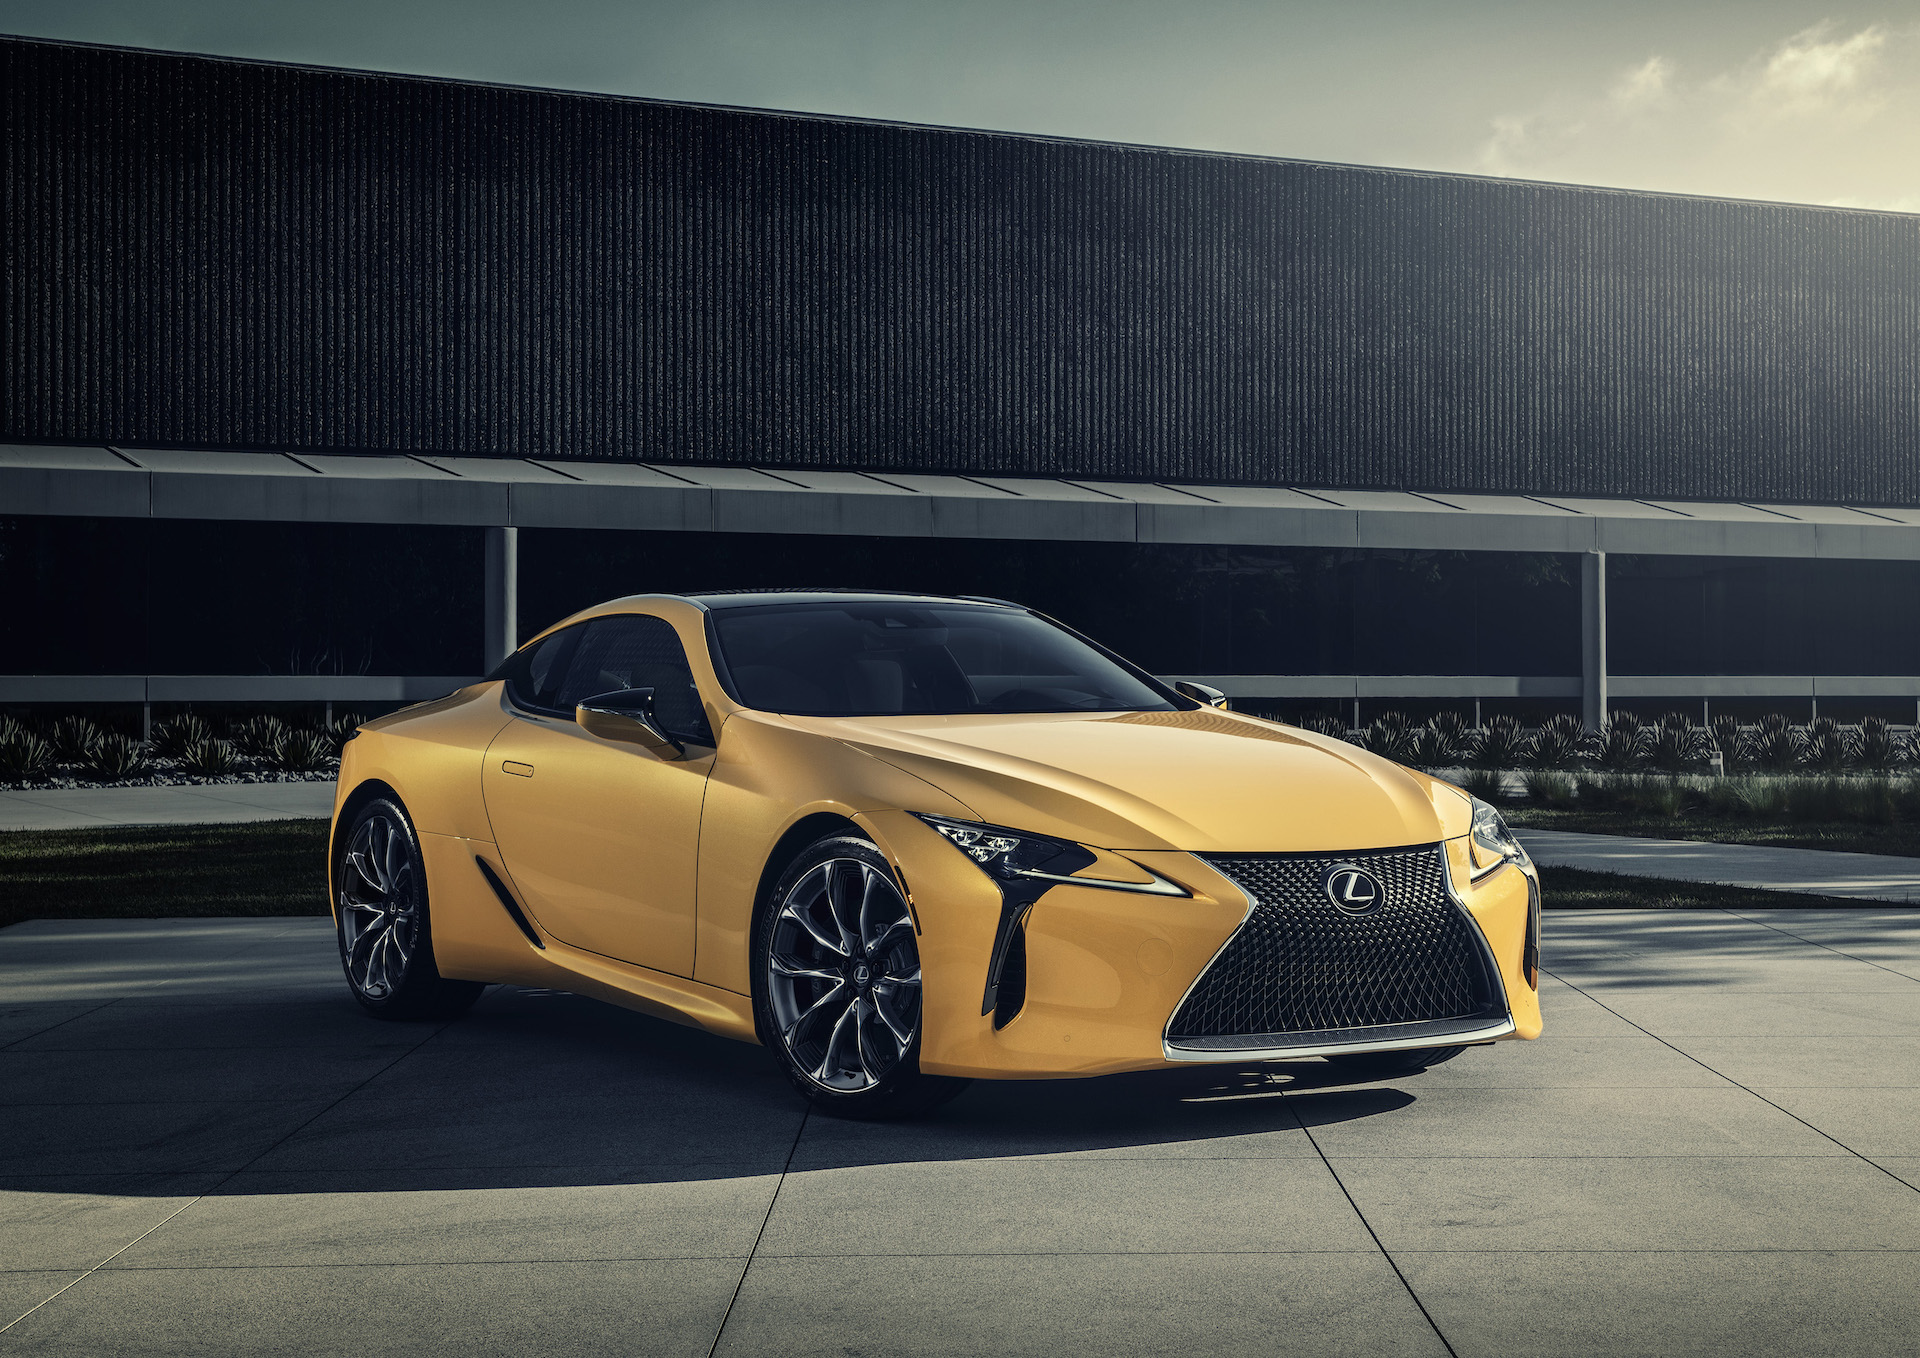 2019 Lexus LC Review, Ratings, Specs, Prices, and Photos - The Car Connection